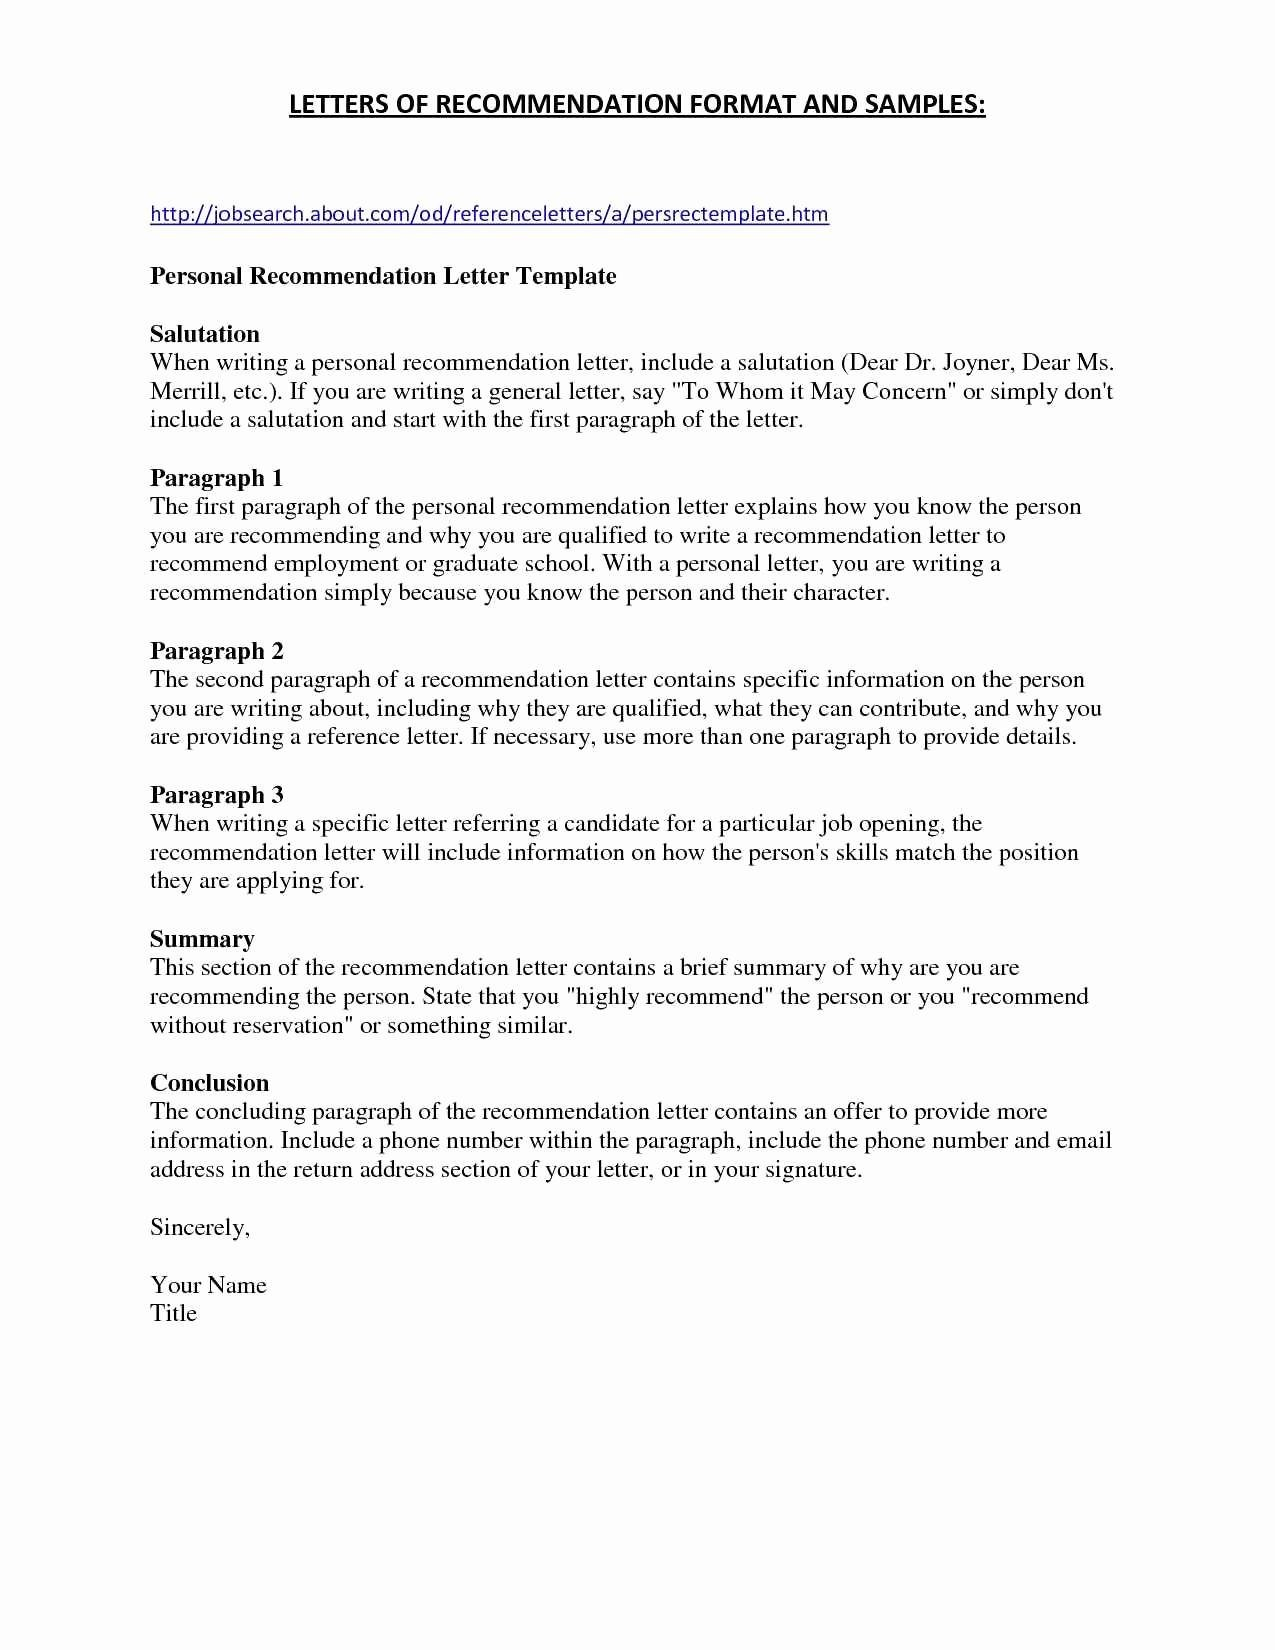 Employment verification letter template microsoft for Cover letter to consultant for job